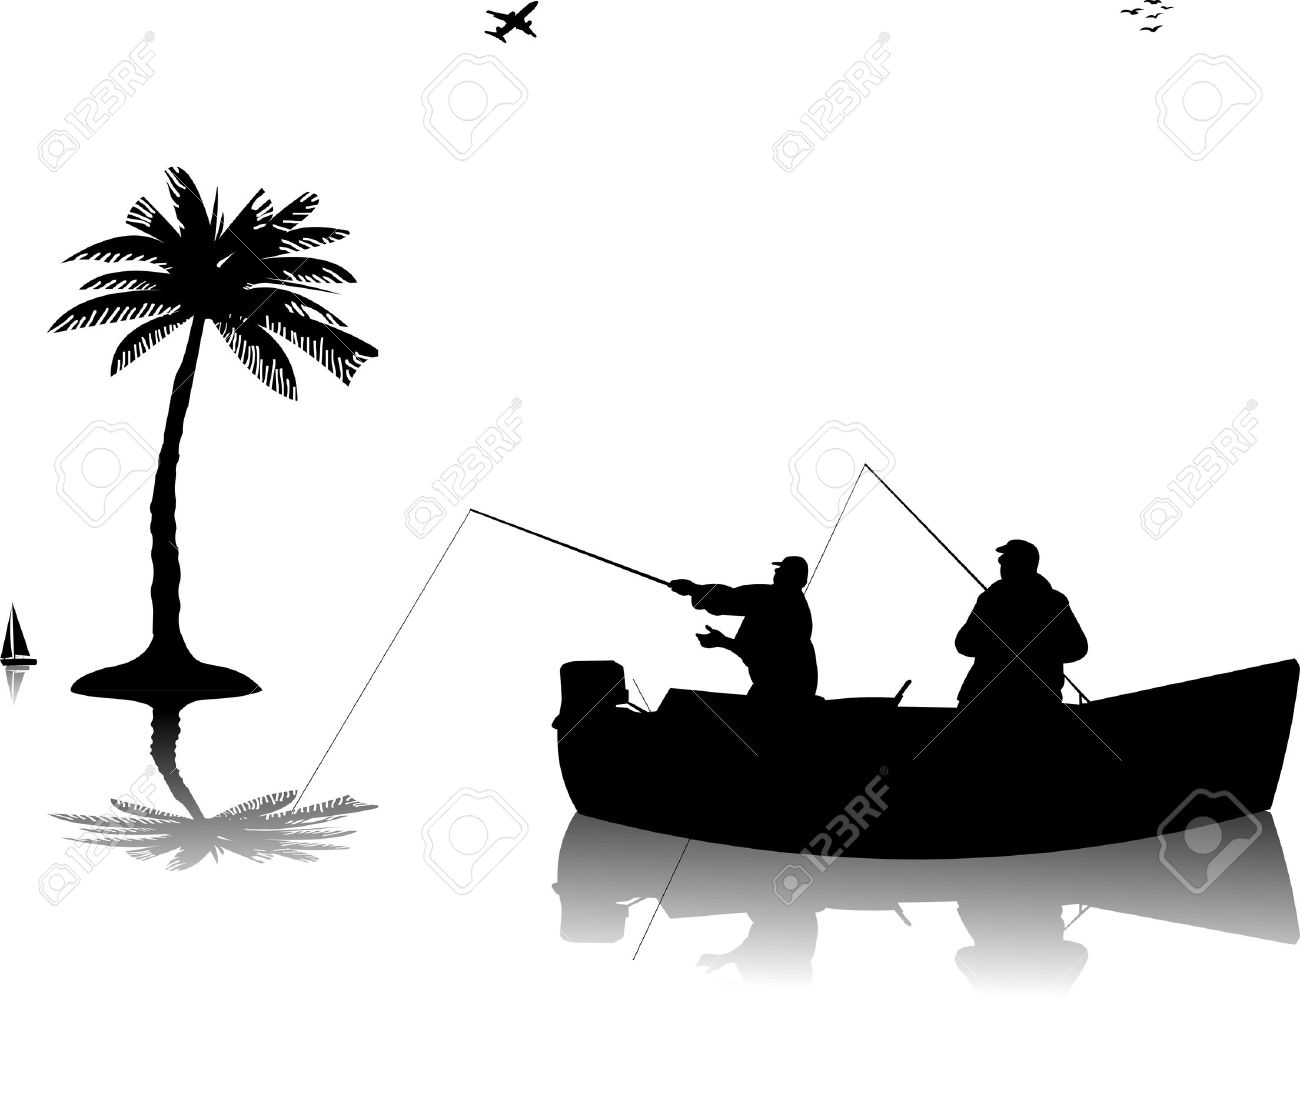 17 848 fishing silhouette stock illustrations cliparts and